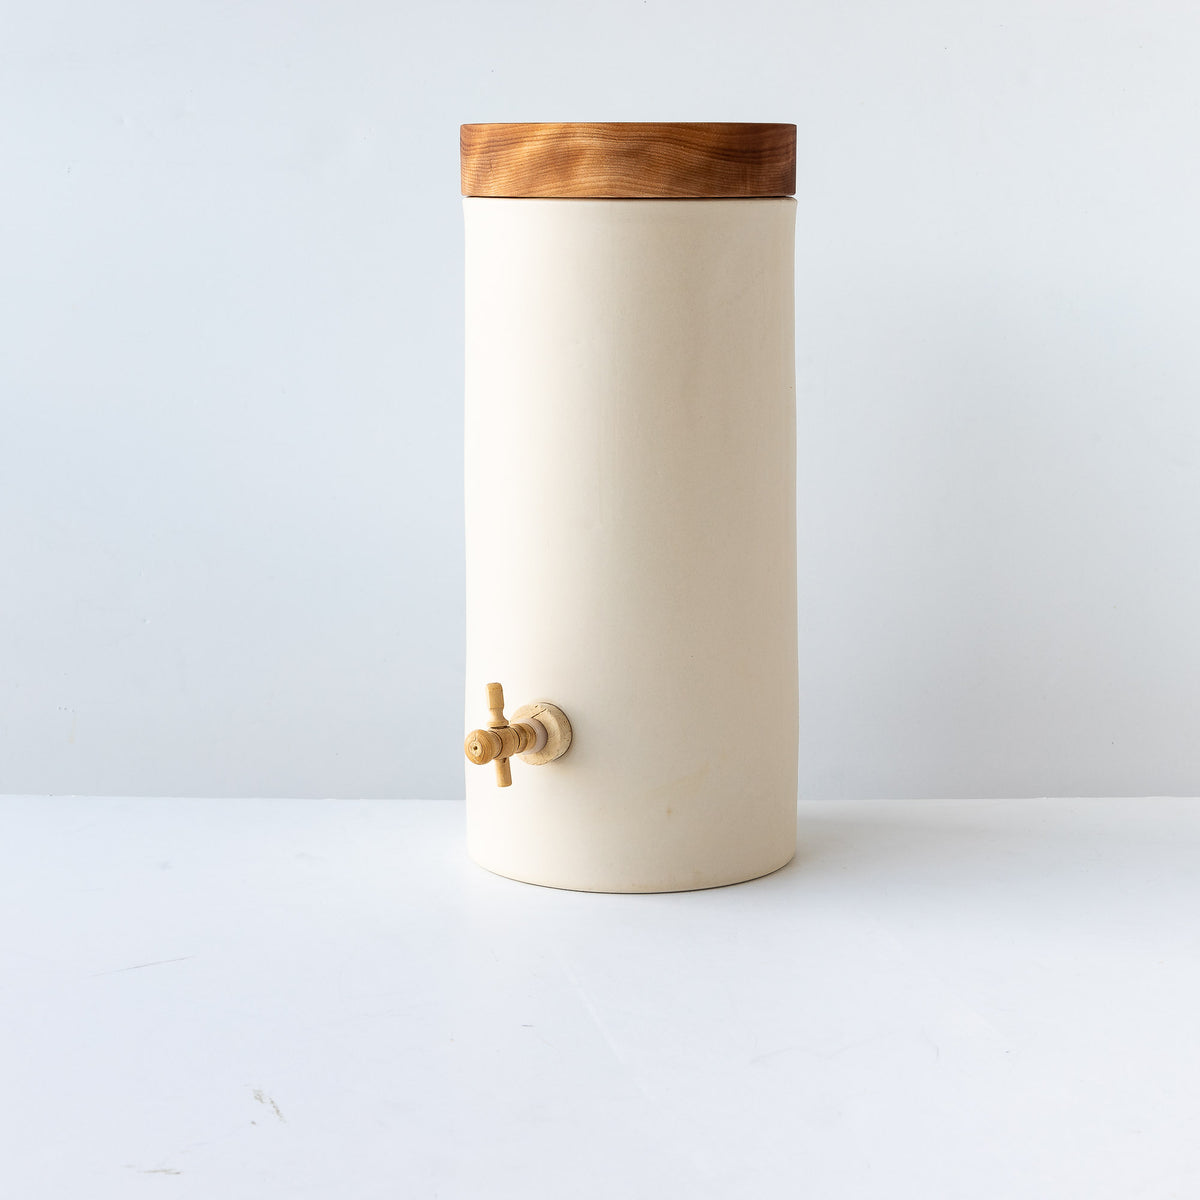 First Fermentation Jar in Stoneware - 6 Liters - Handmade - Sold by Chic & Basta